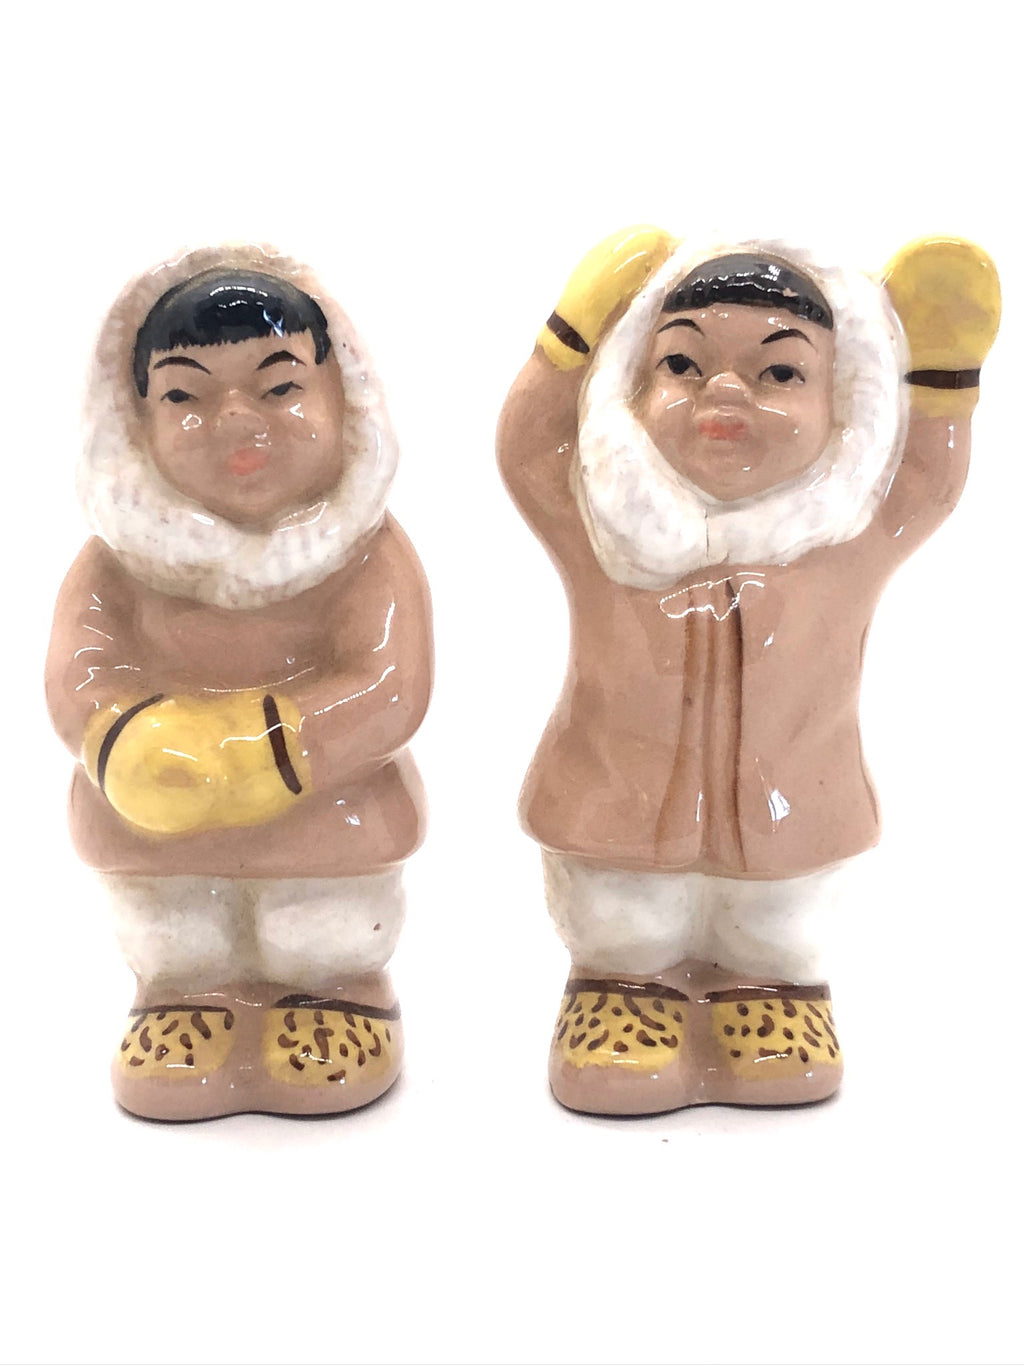 Alaskan Pair of Vintage Salt & Pepper Shakers